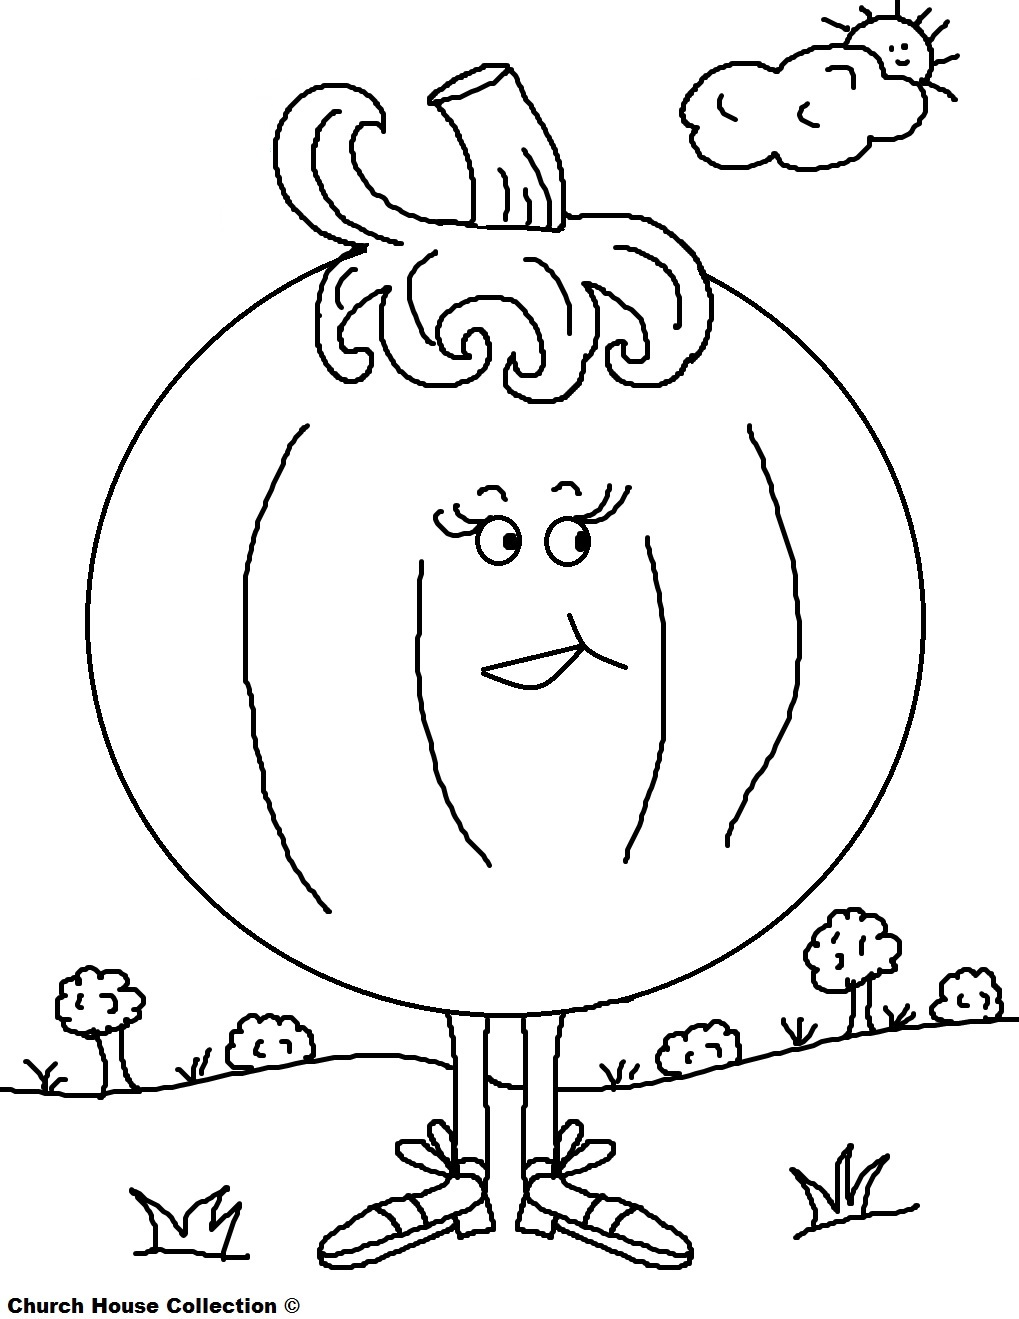 church house collection blog free printable pumpkin coloring